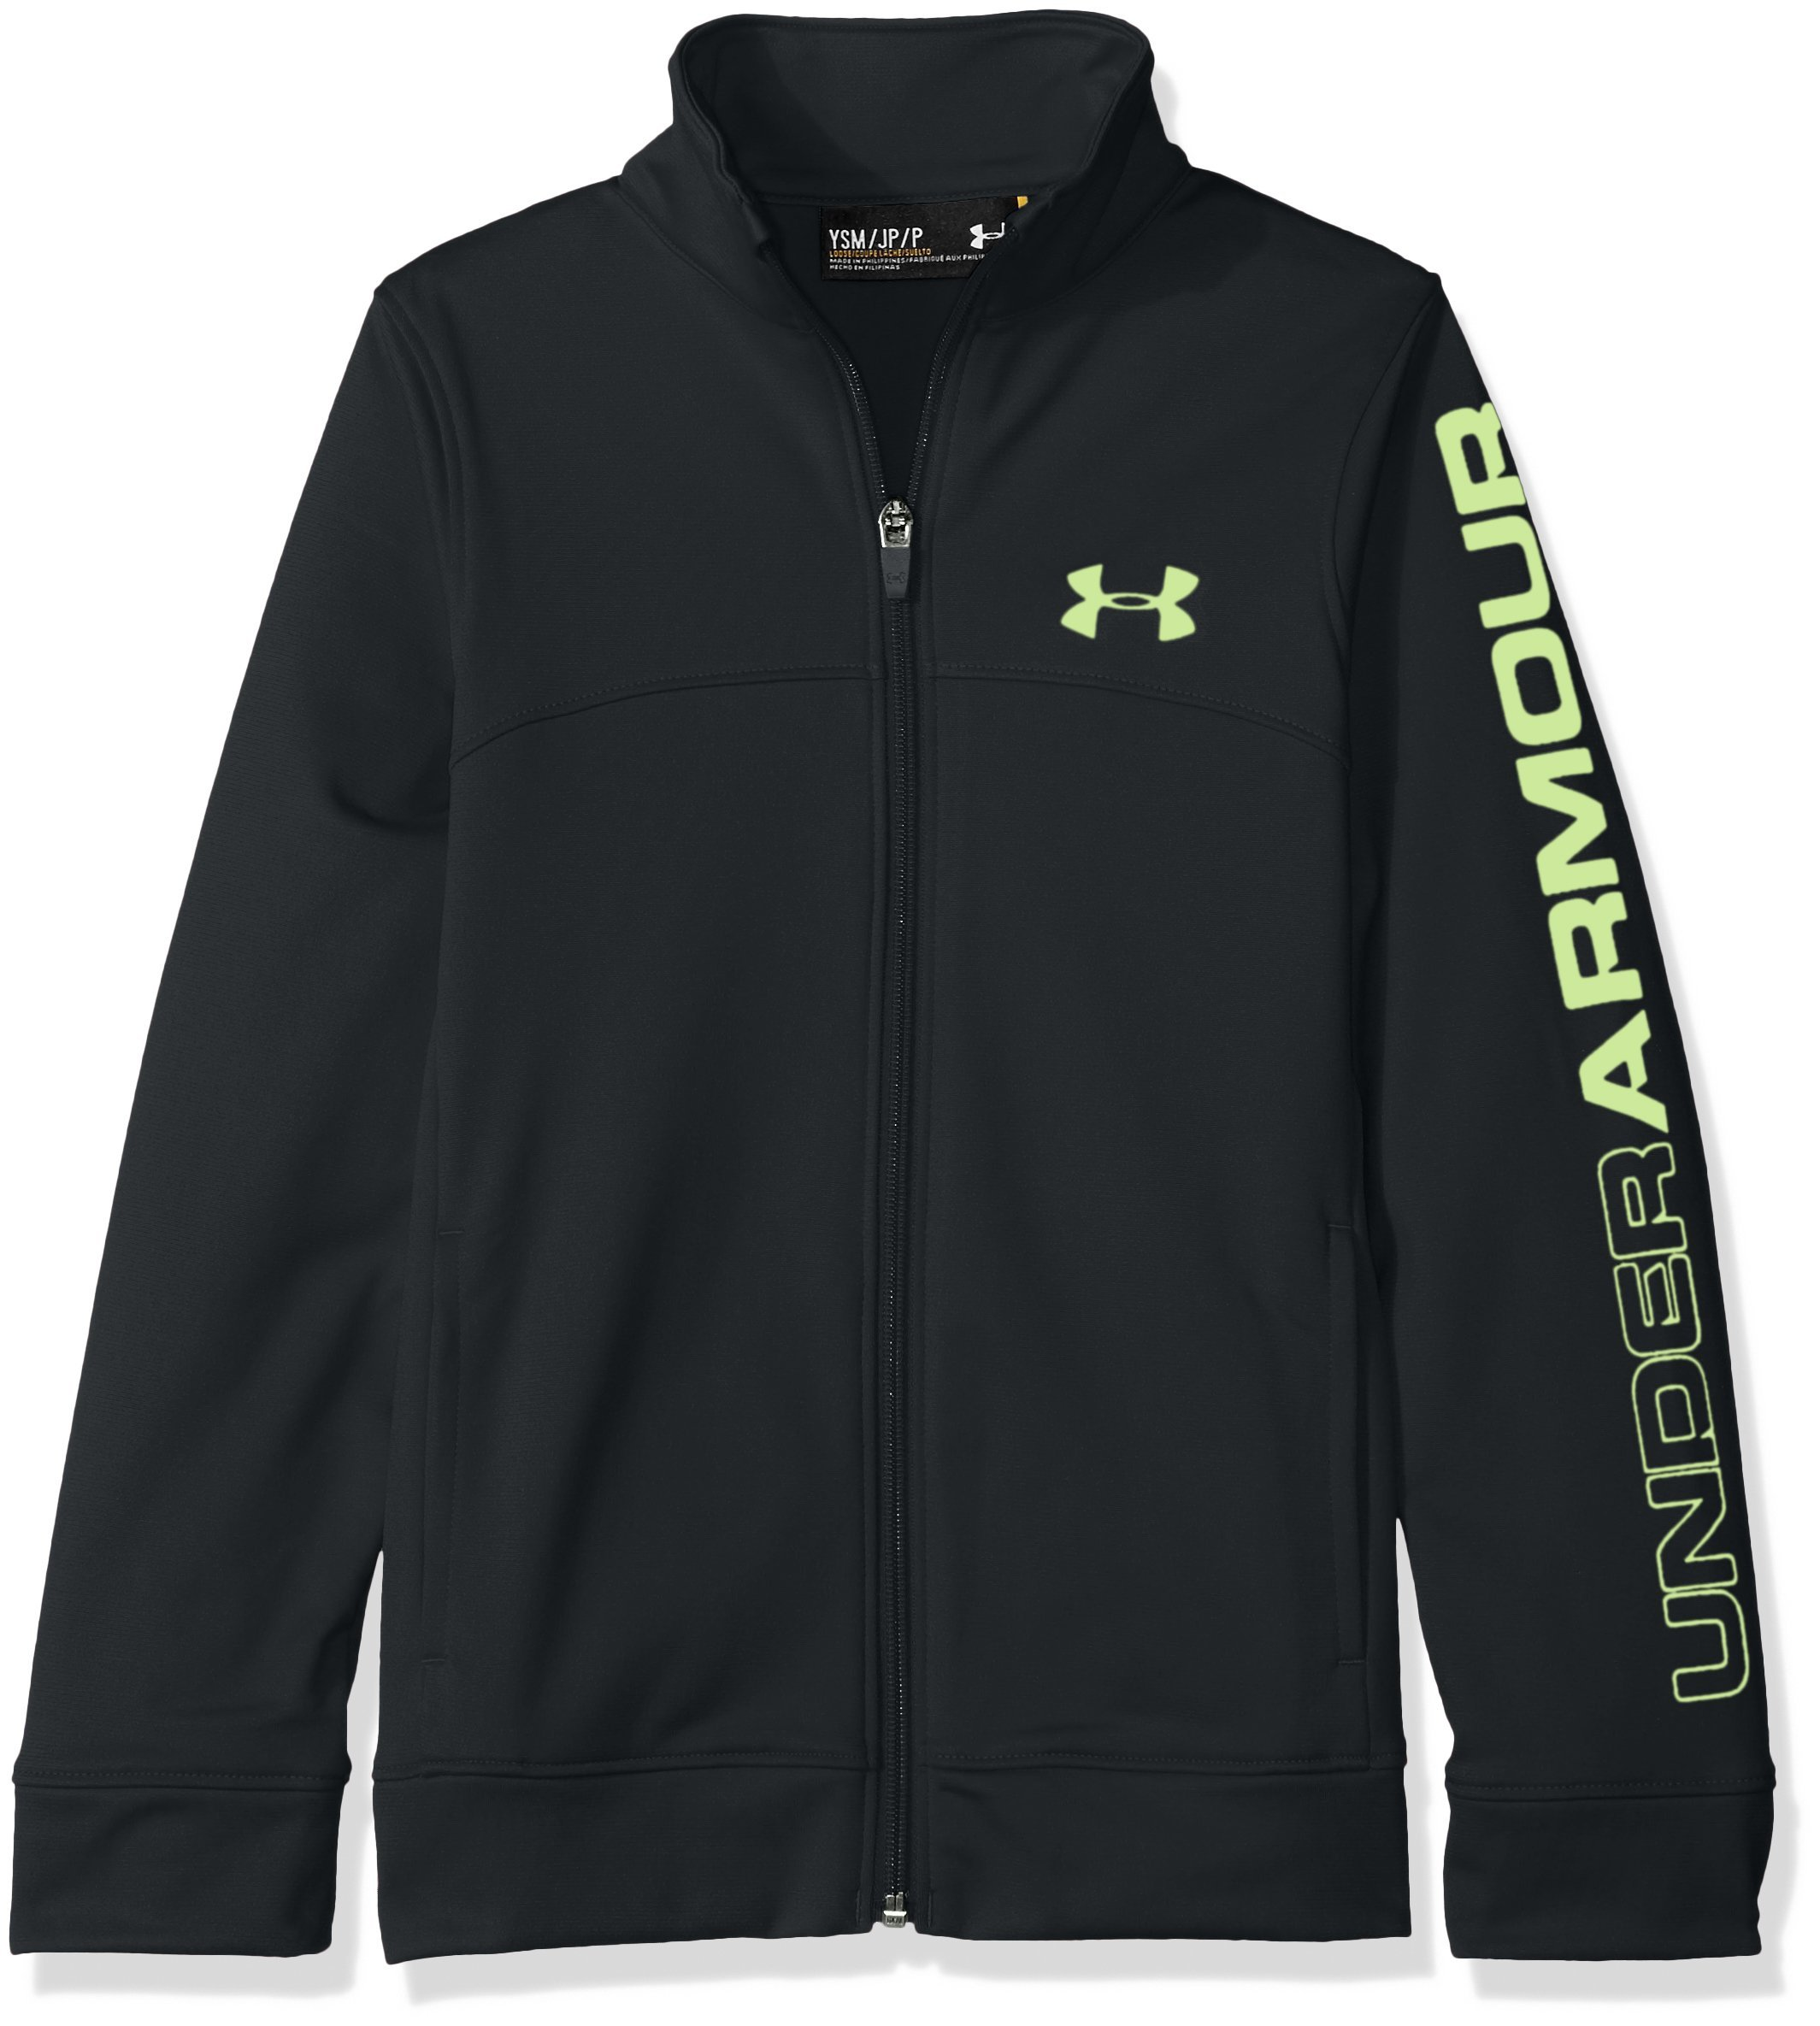 Under Armour Boys' Pennant Warm Up Jacket,Anthracite (016)/Quirky Lime, Youth X-Small